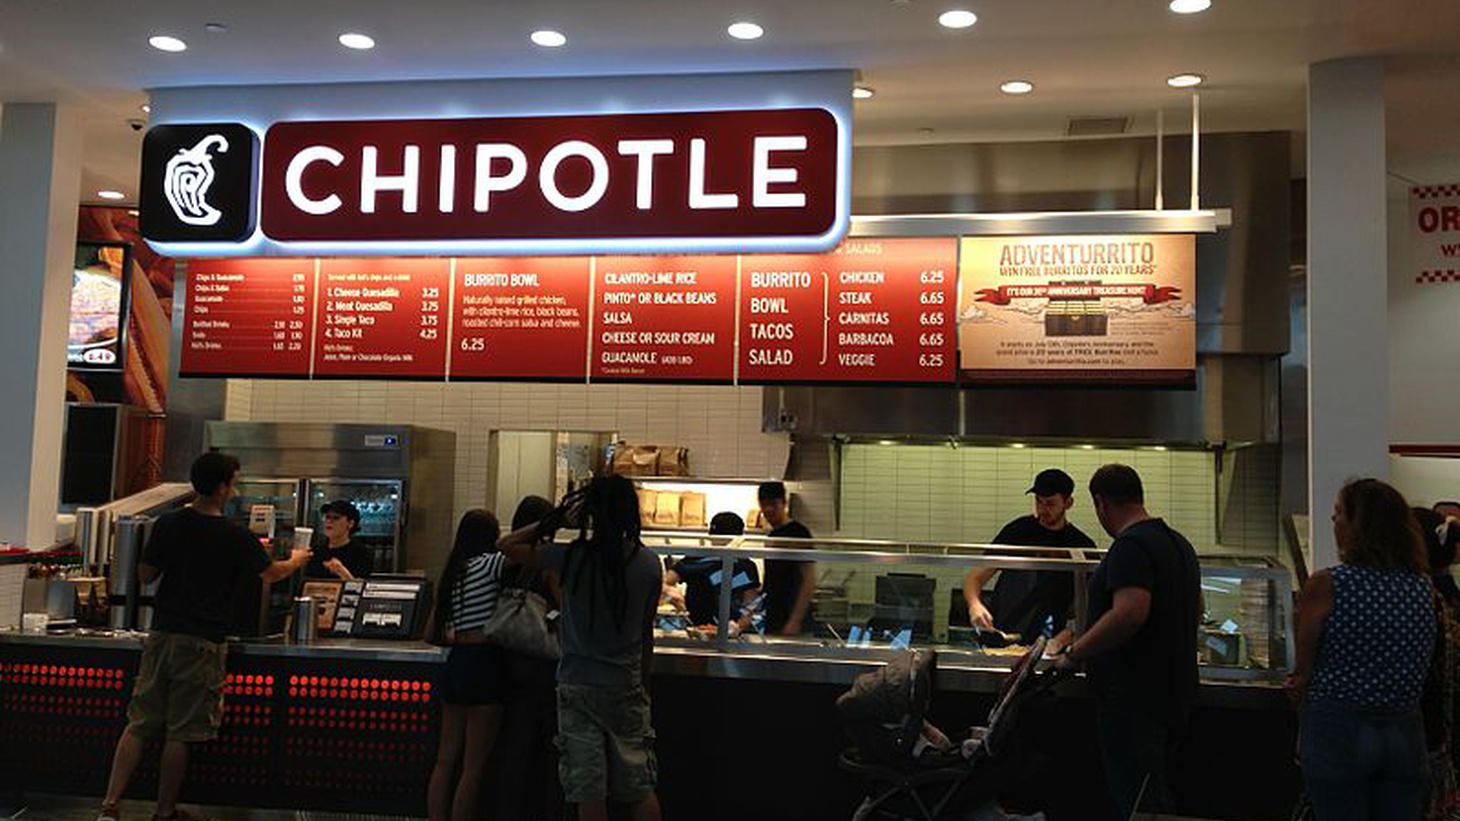 Chipotle is making its burritos GMO-free, but some scientists are not impressed. As Big Food goes greener will it cater to consumers' health perceptions at the expense of science, and what effects will it have on the nation's food supply chain.